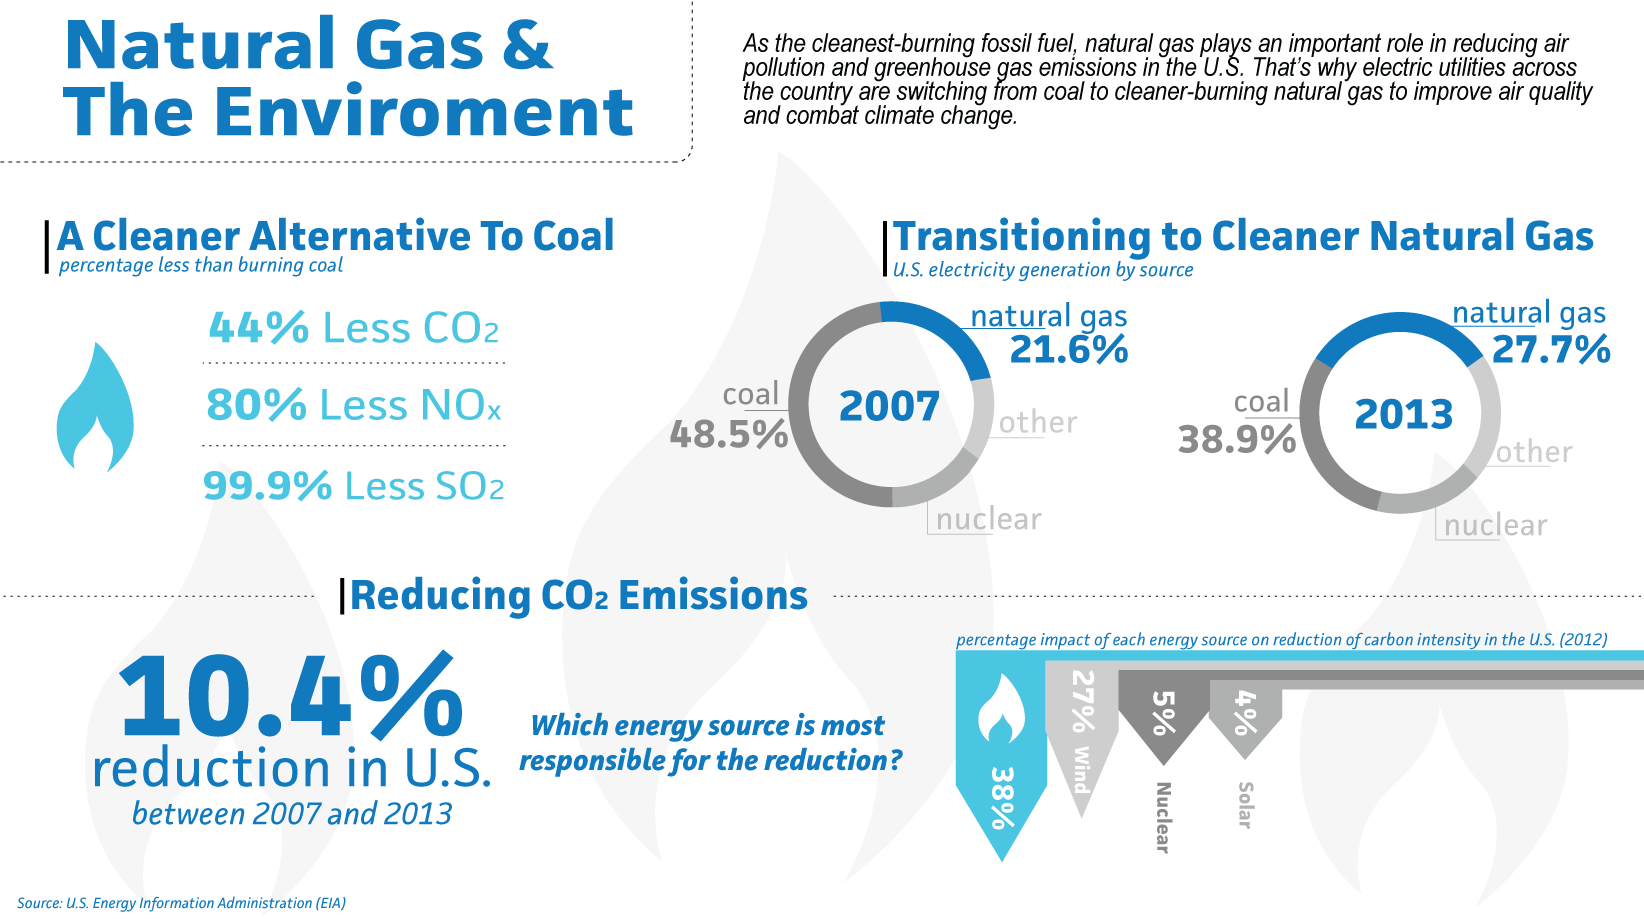 Natural Gas & The Environment infographic